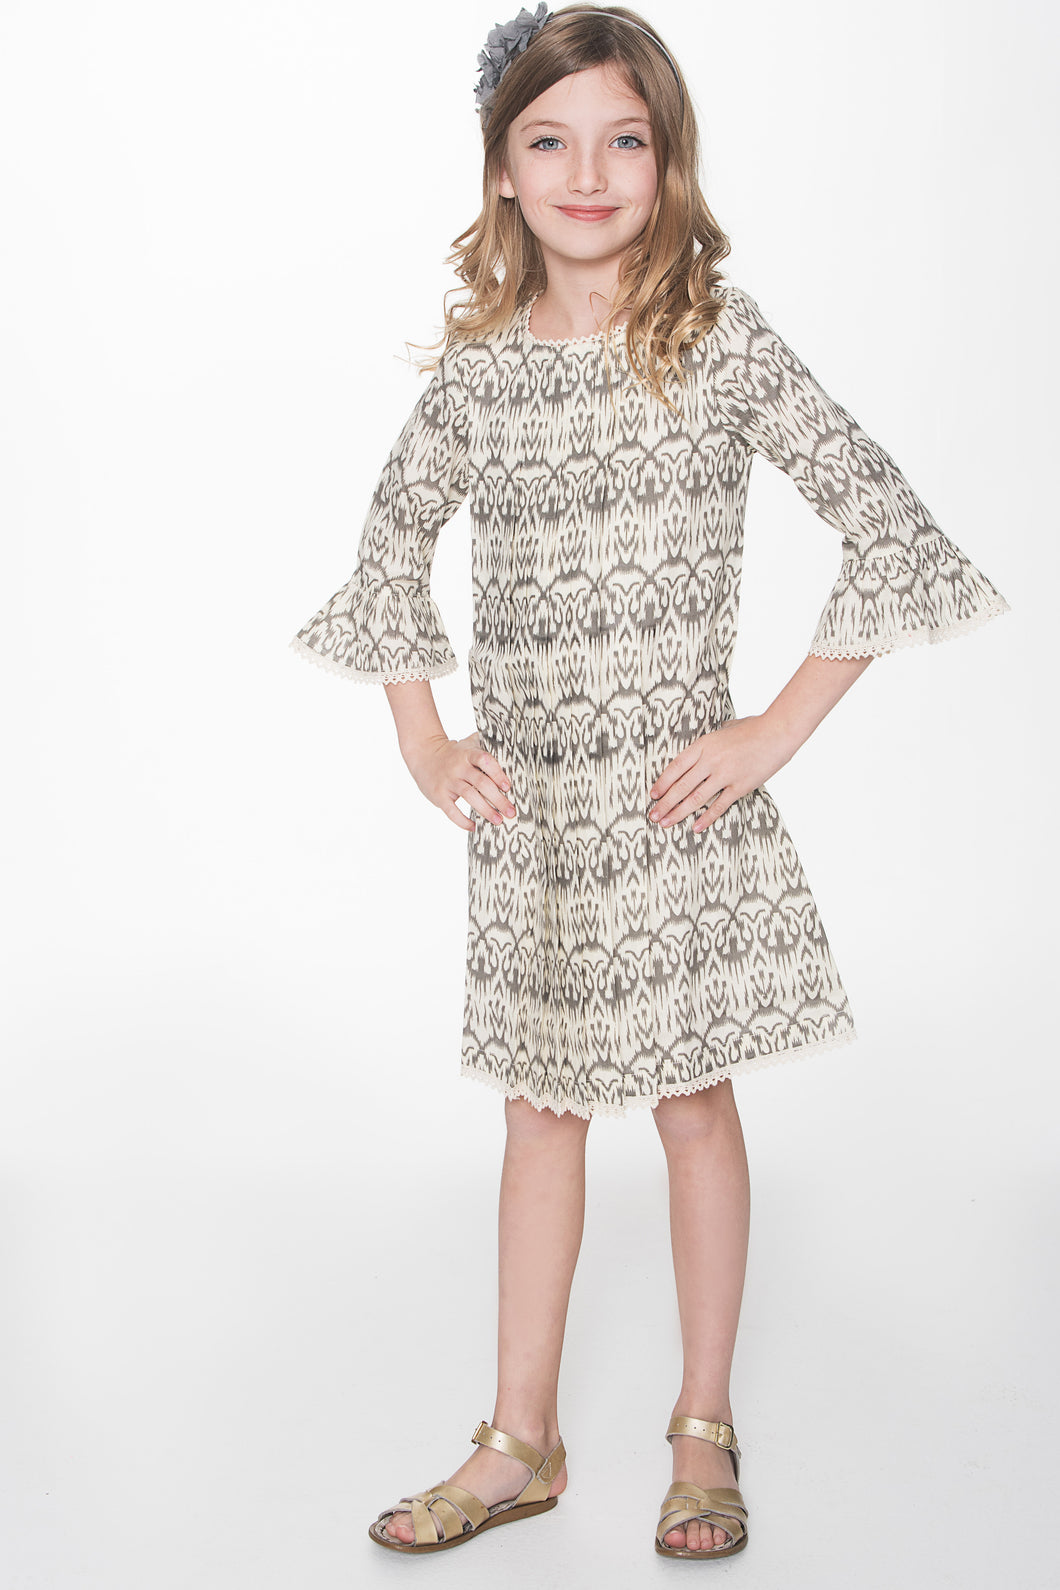 Grey and Off-white Ikat Box Pleat Lace Detail Dress - Kids Wholesale Boutique Clothing, Dress - Girls Dresses, Yo Baby Wholesale - Yo Baby